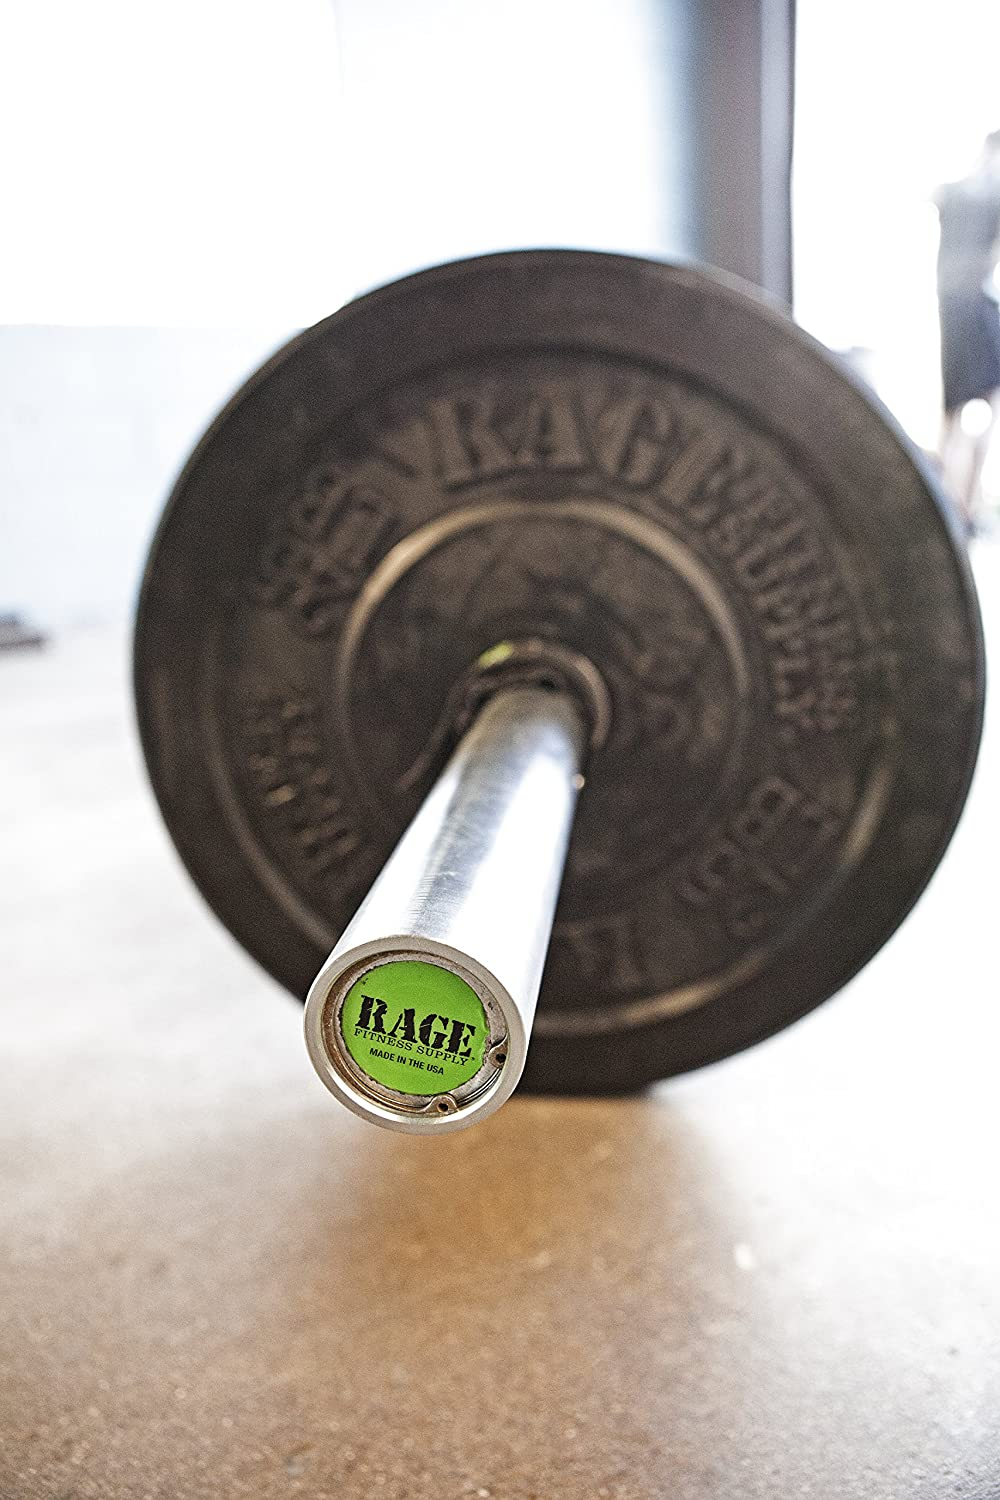 For Weightlifting and Power Lifting 15 lb RAGE Fitness Olympic Training Barbell